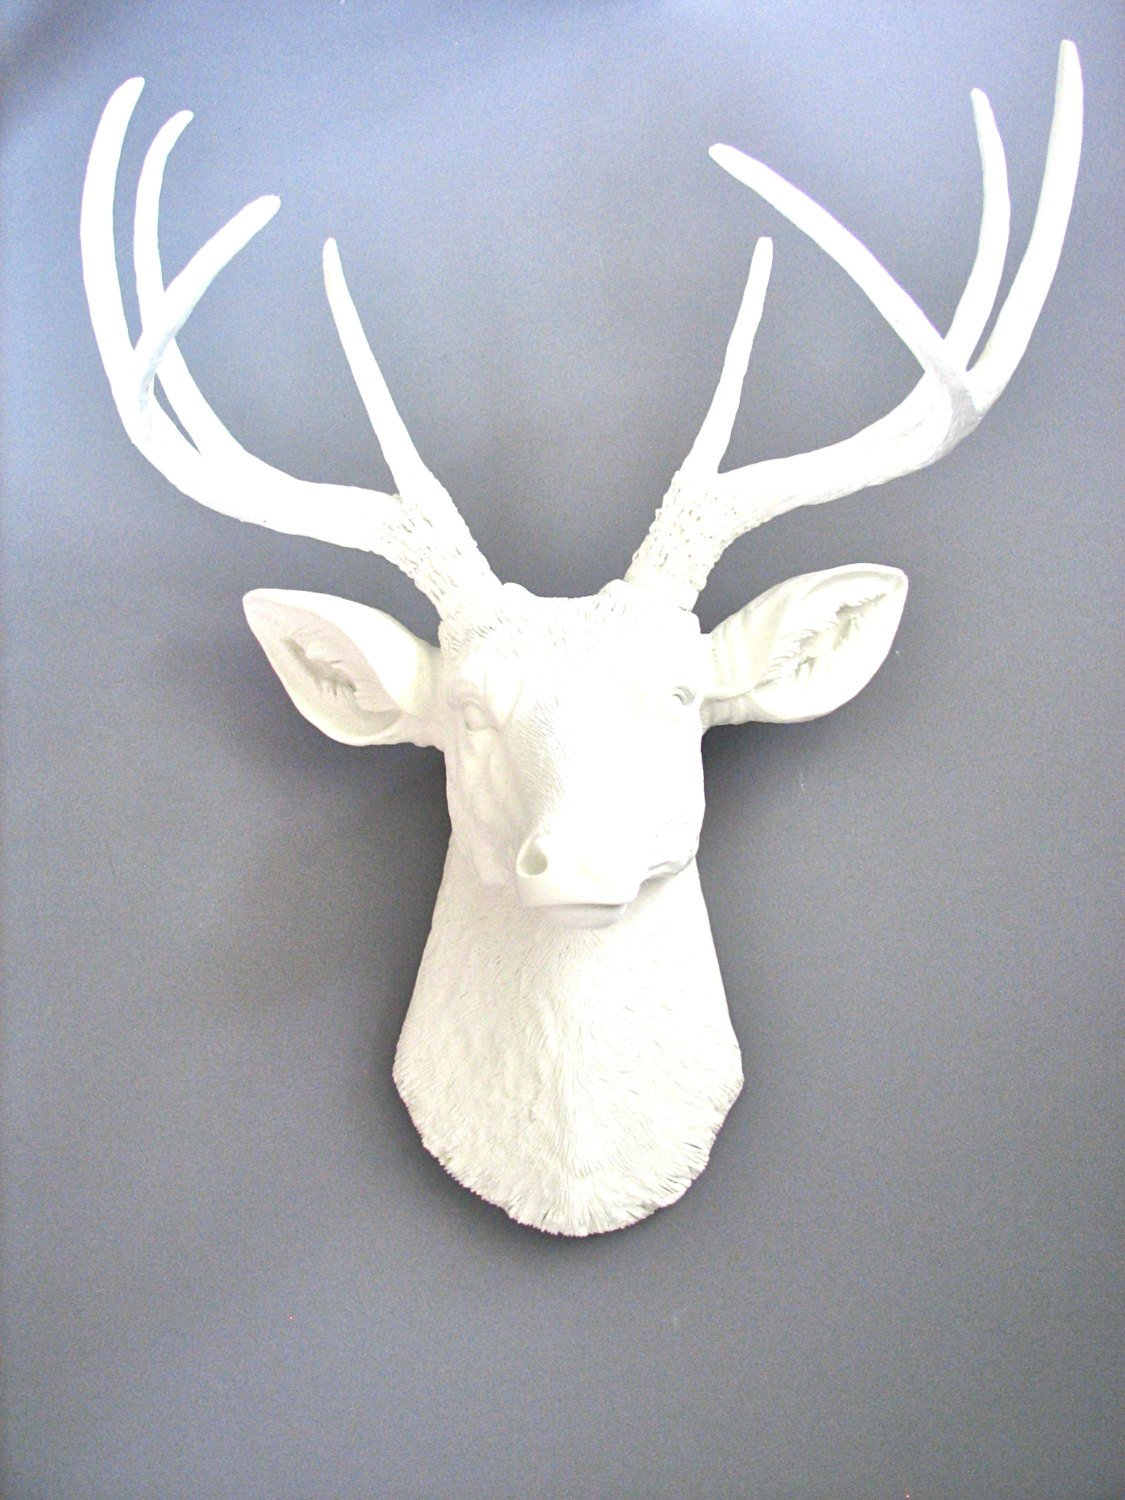 White Deer Head Faux Taxidermy Wall Mount Wall Hanging Regarding Large Deer Head Faux Taxidermy Wall Decor (View 7 of 30)